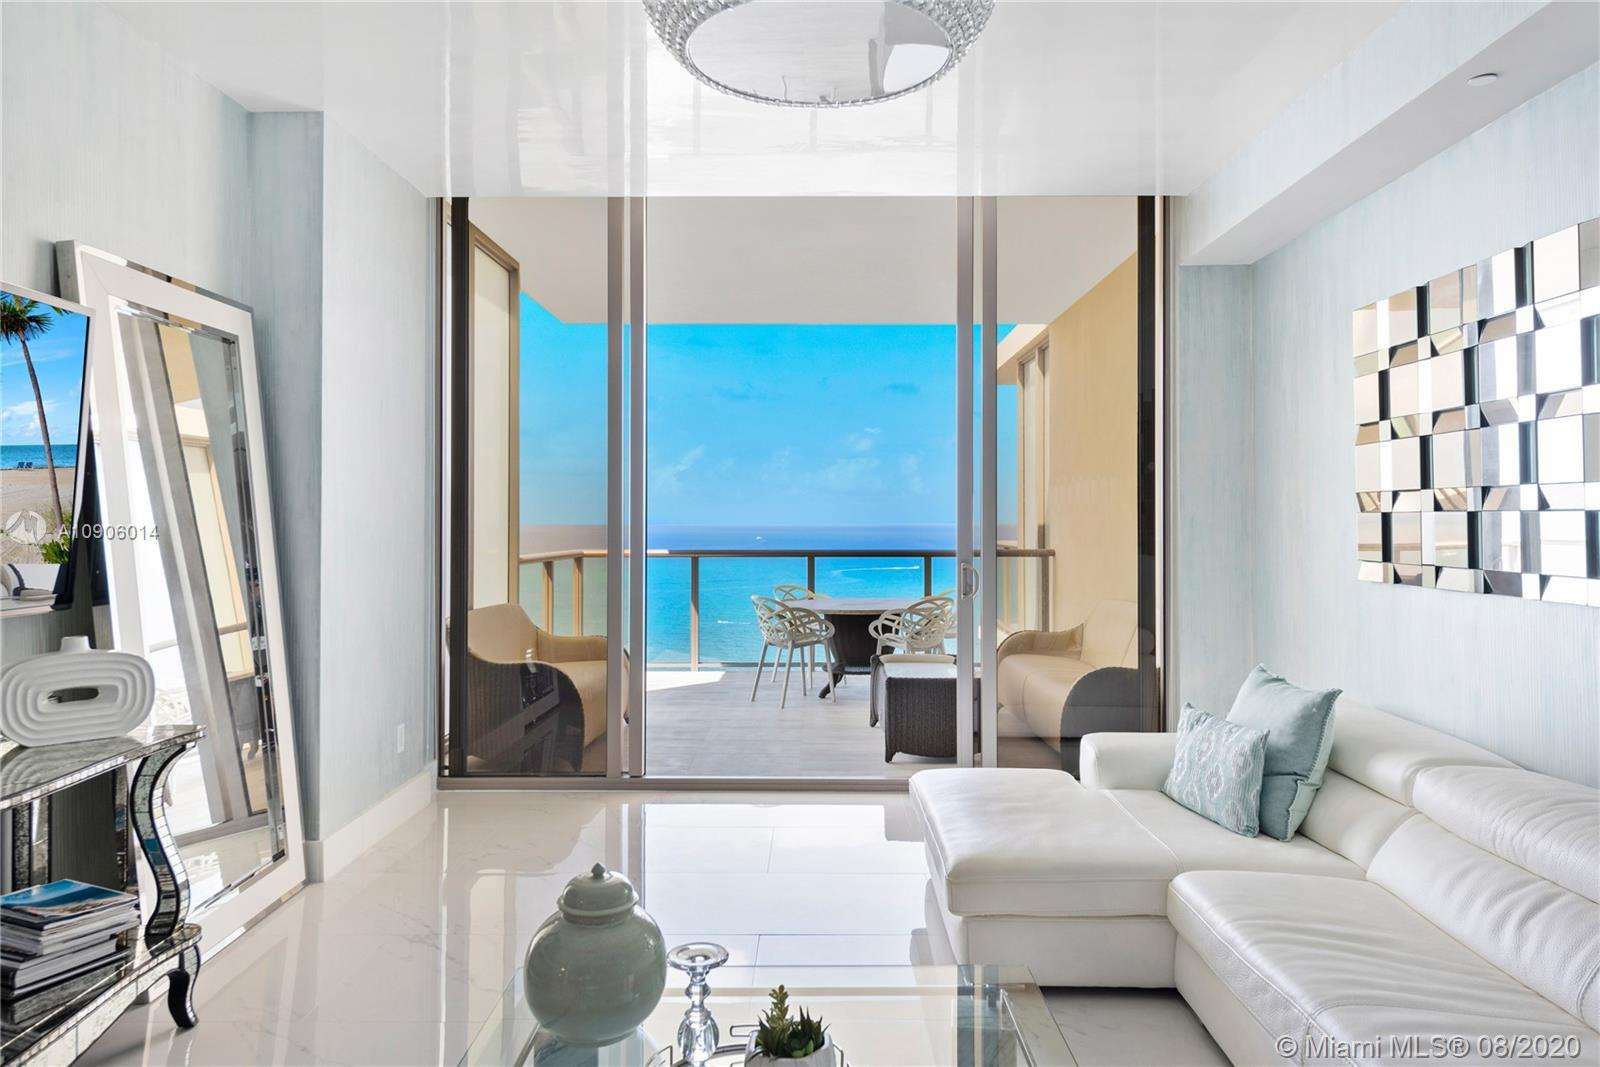 Endless direct ocean views from this spacious two bedroom residence at St. Regis Bal Harbour. Locate